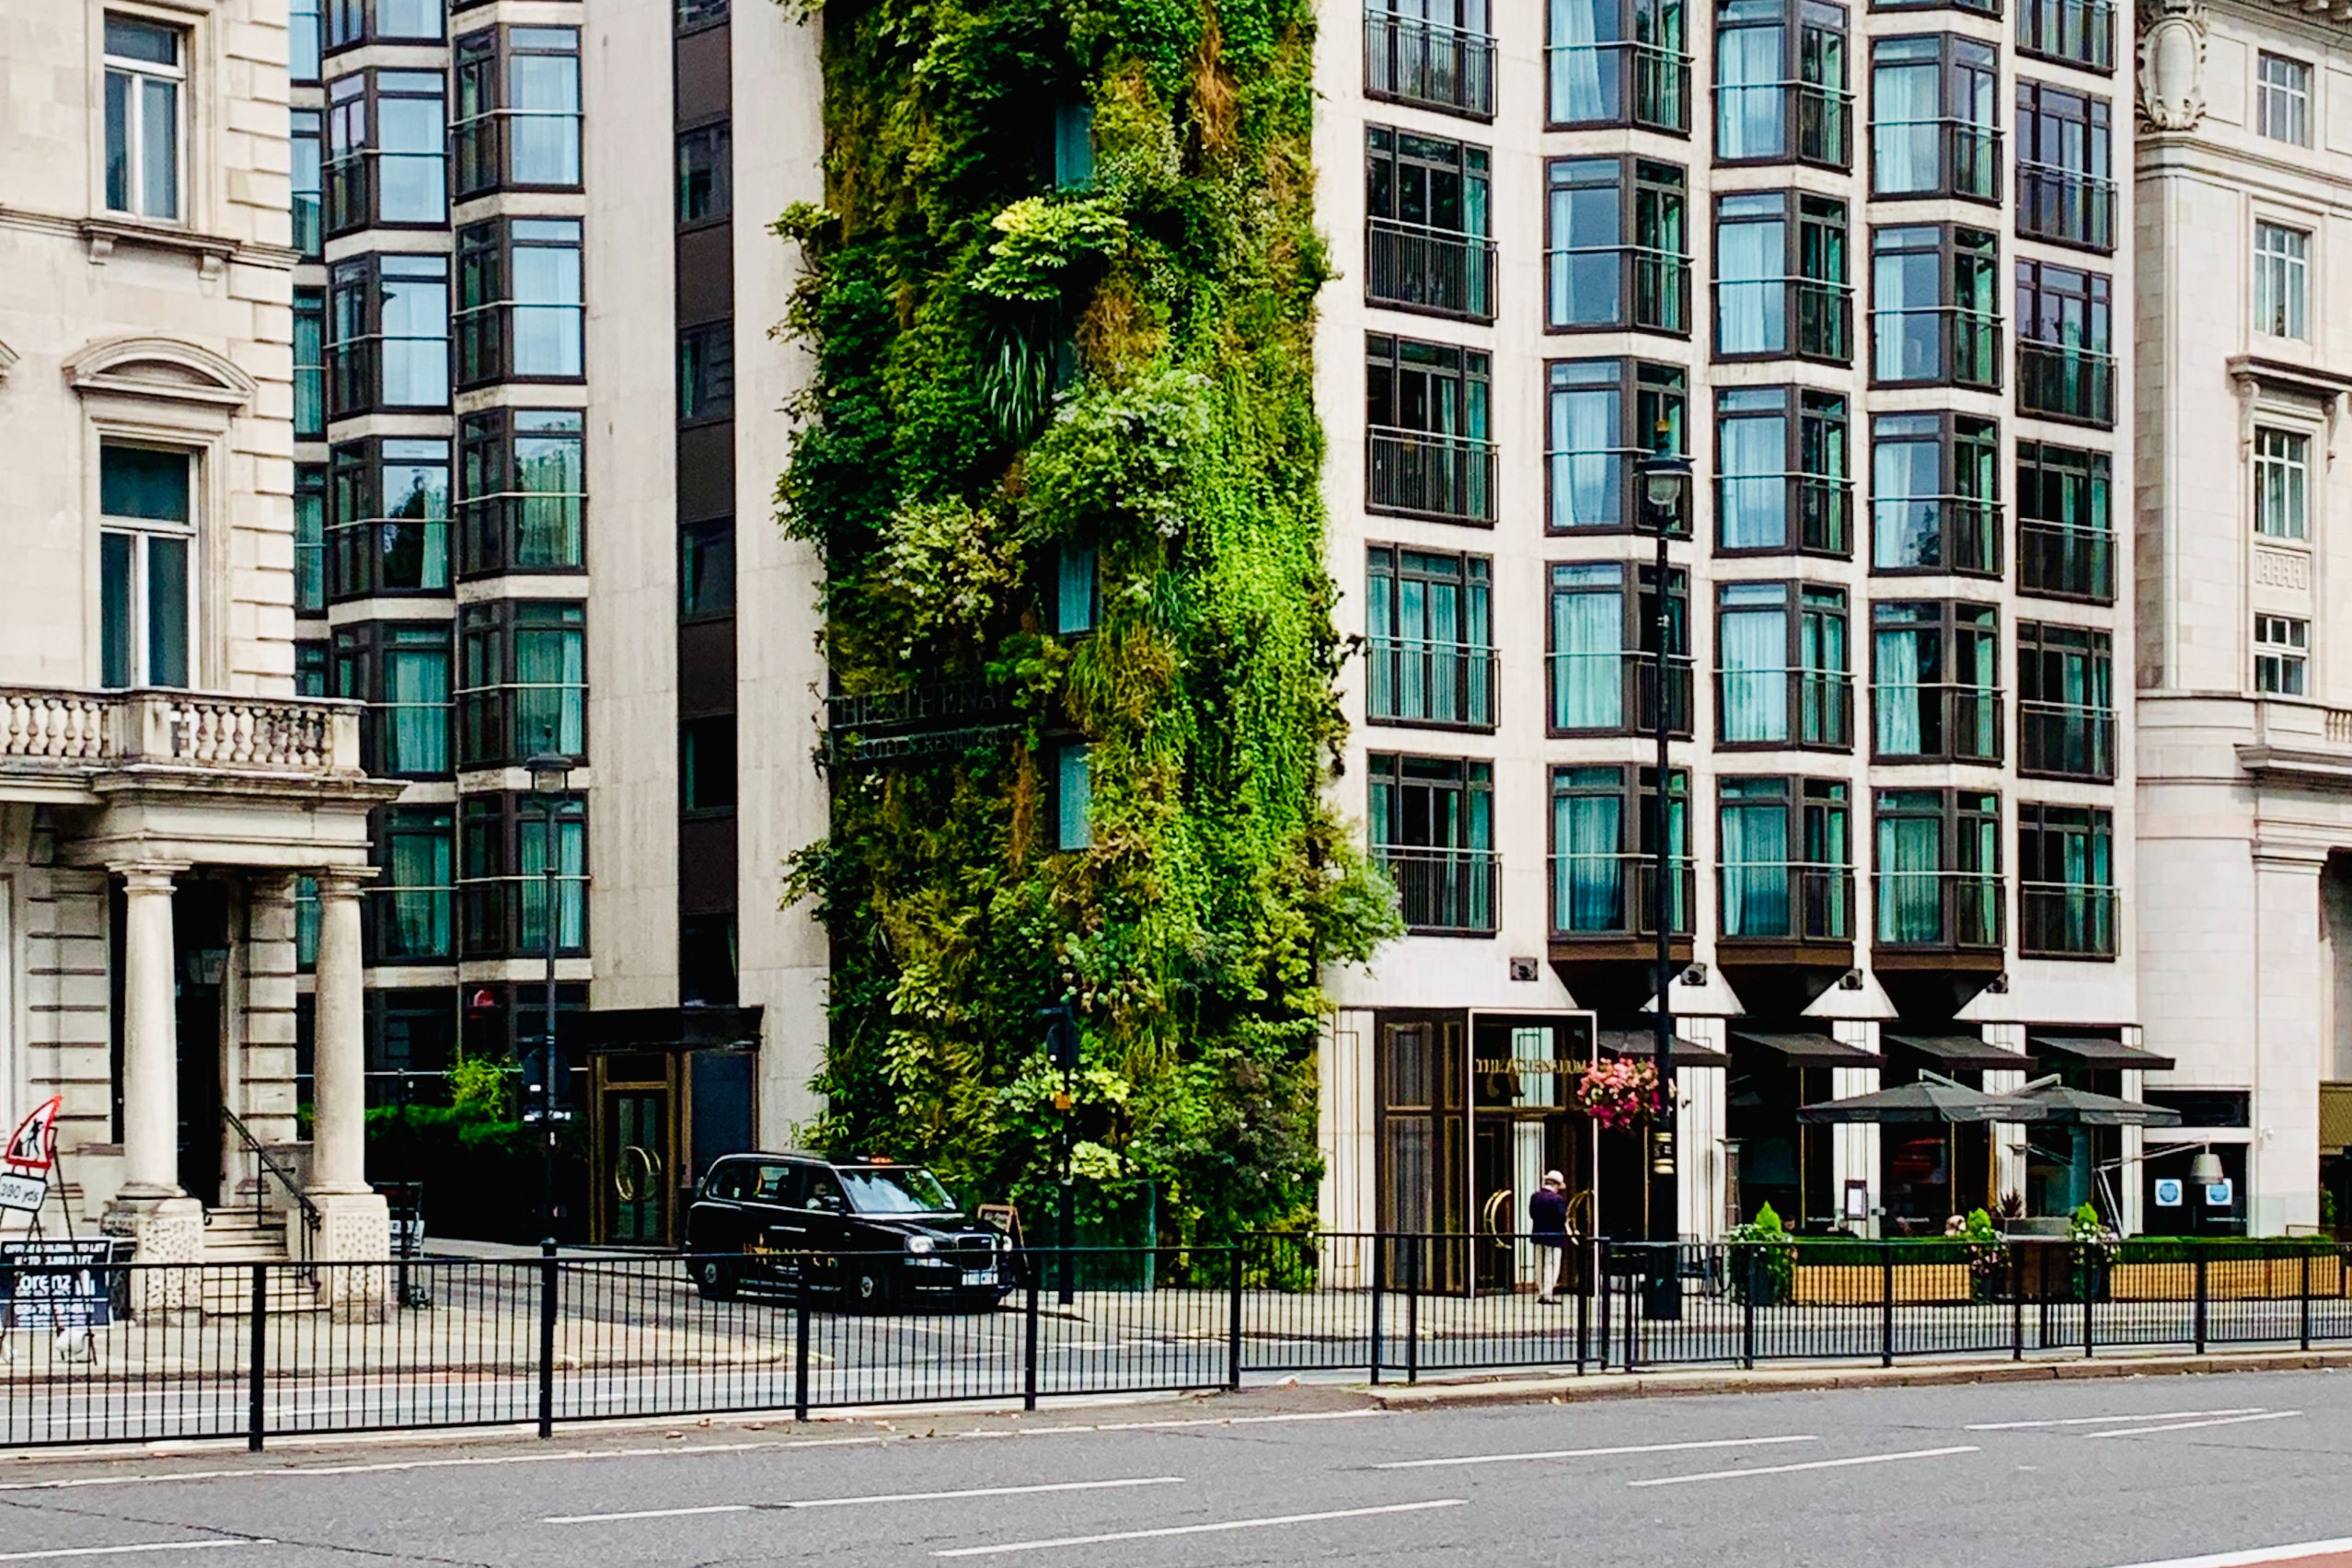 A green building in the middle of a city that showcases its plant-filled wall on the exterior-side of the building.